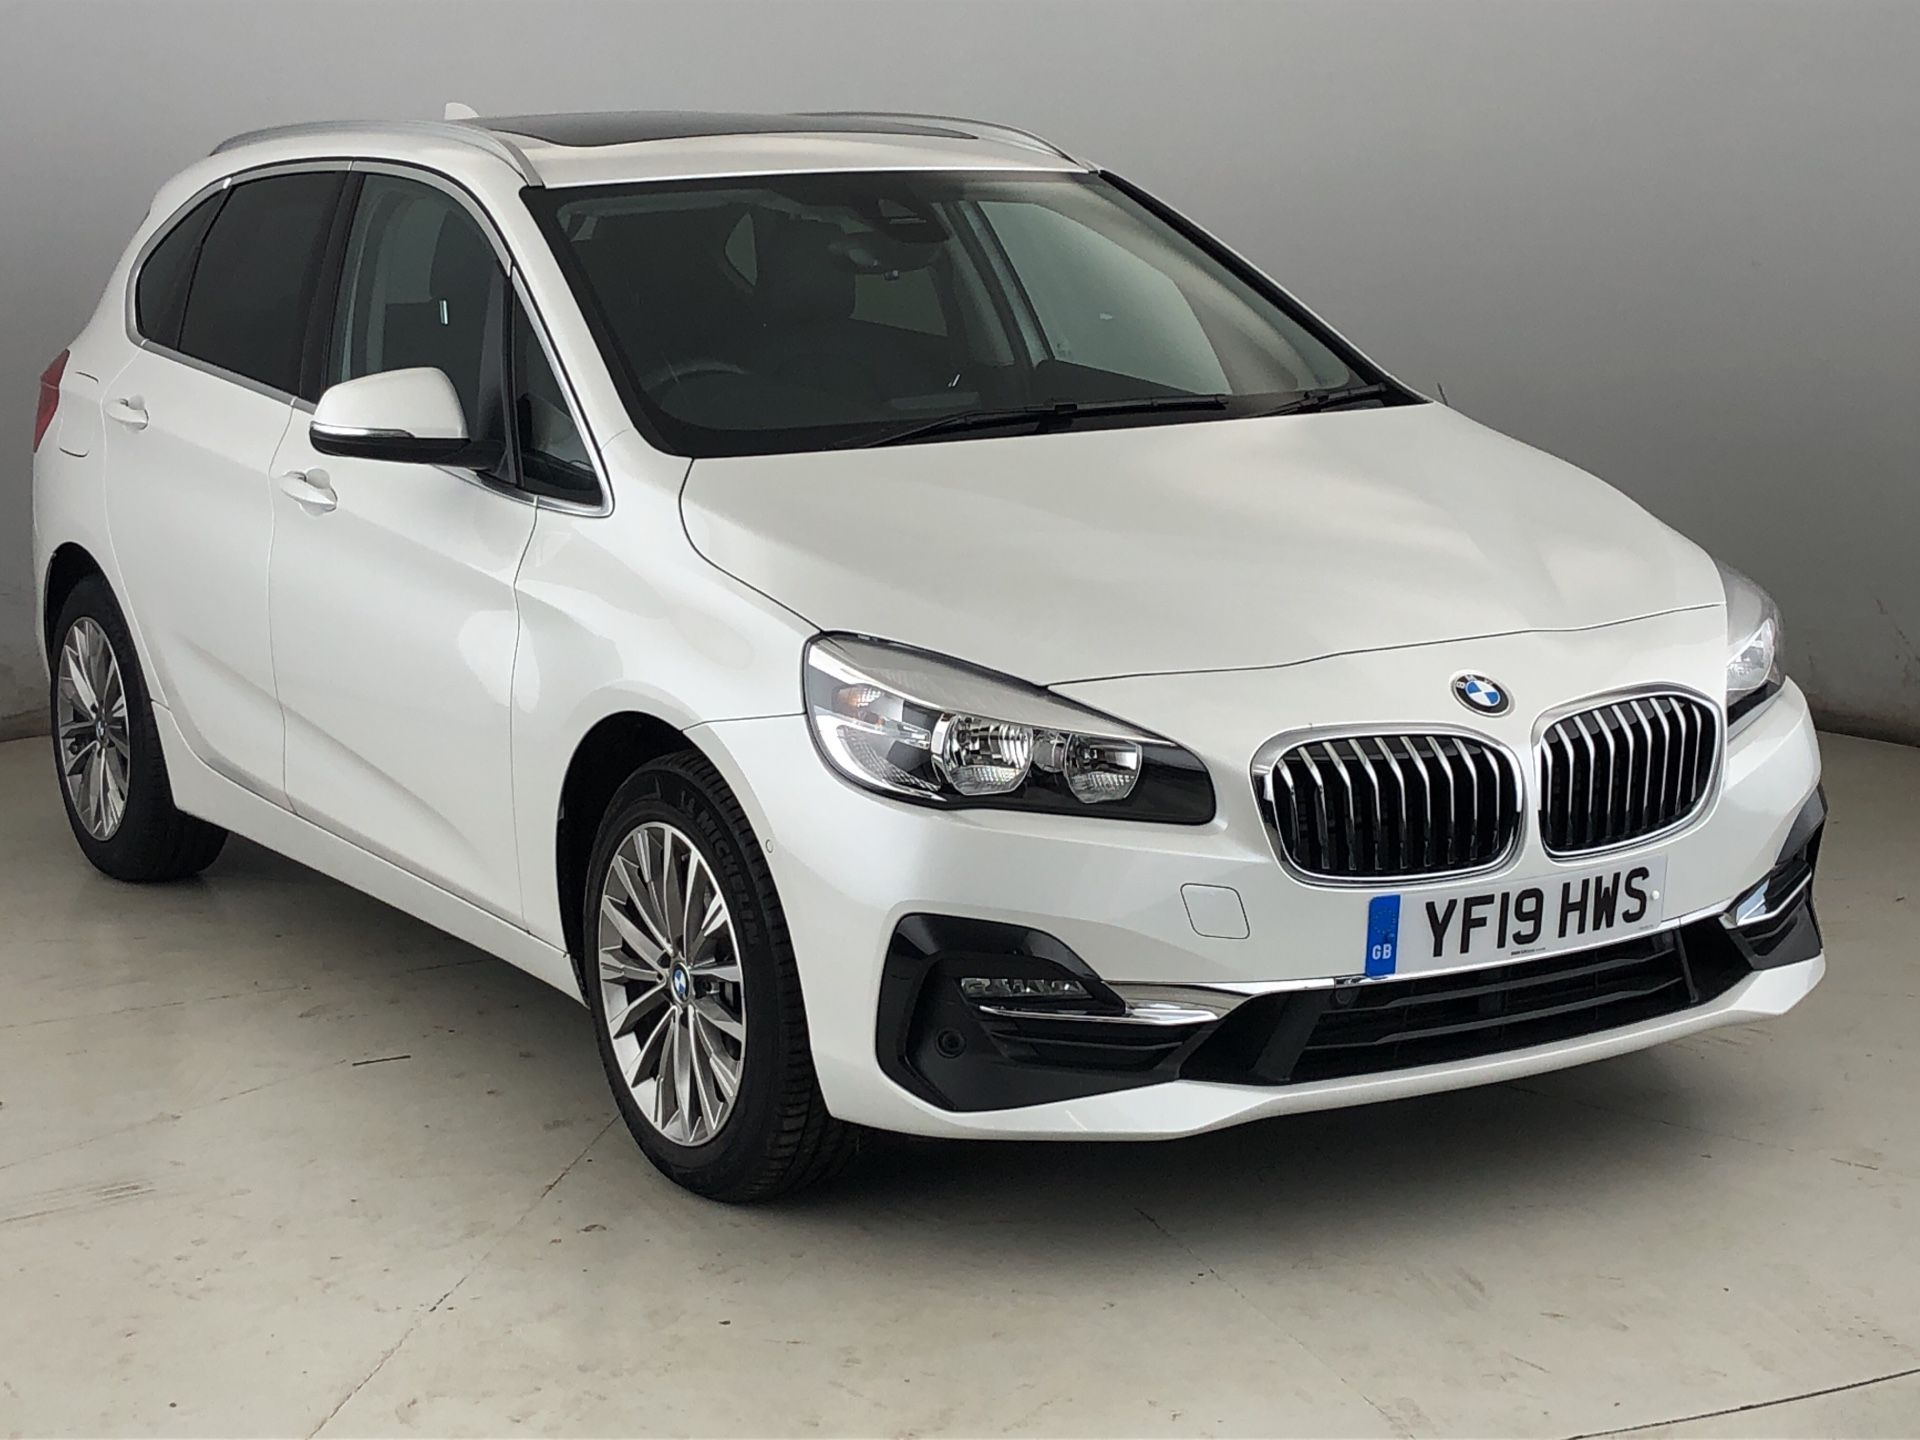 Image 1 - BMW 220d xDrive Luxury Active Tourer (YF19HWS)